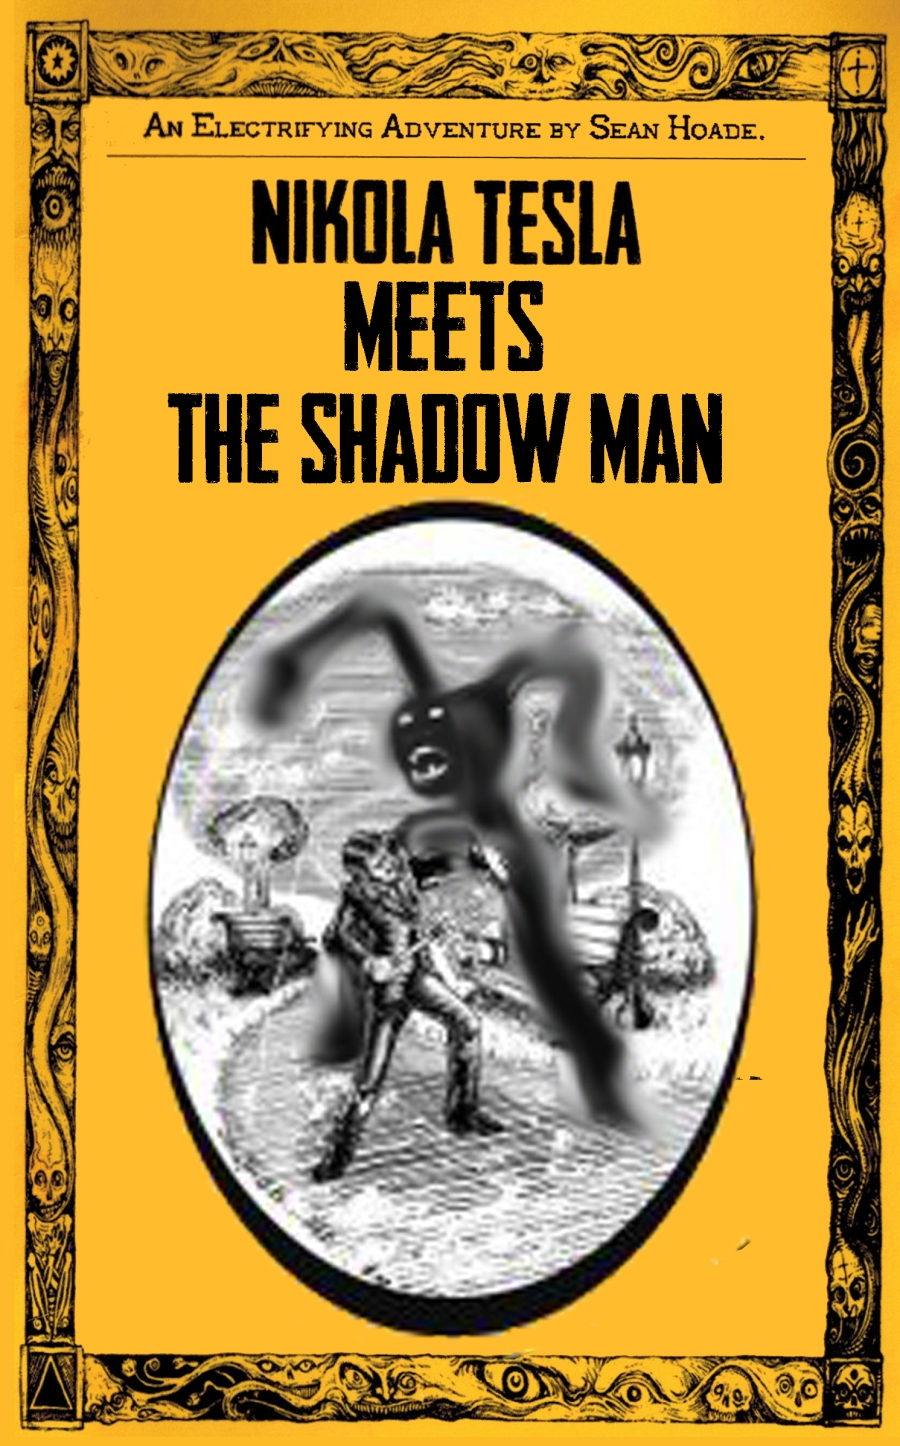 08-19-2016-tesla-meets-the-shadow-man-front-cover-copy